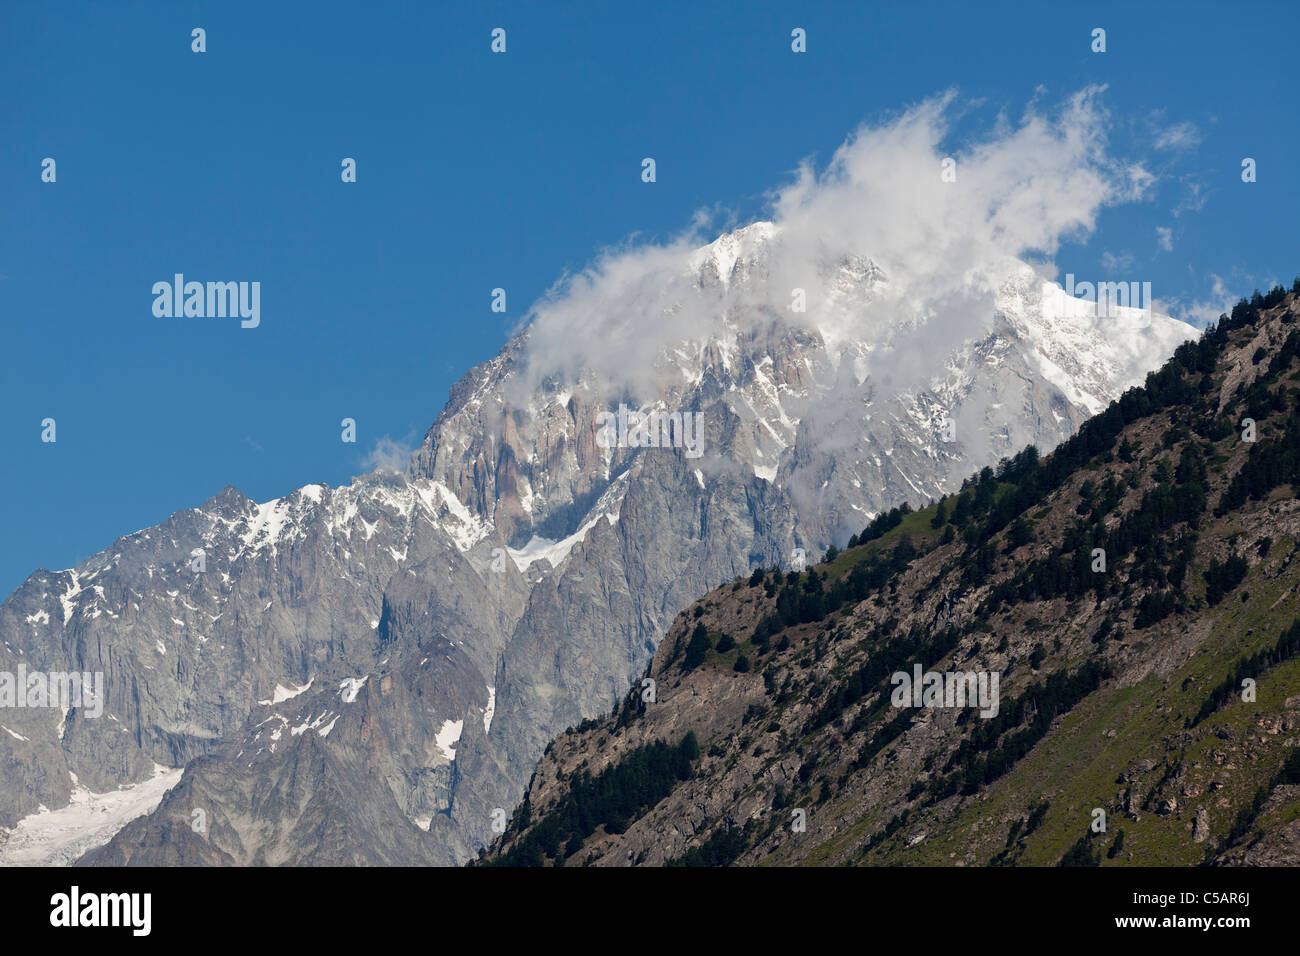 Monte Bianco, or Mont Blanc: summit seen from the Italian side - Stock Image